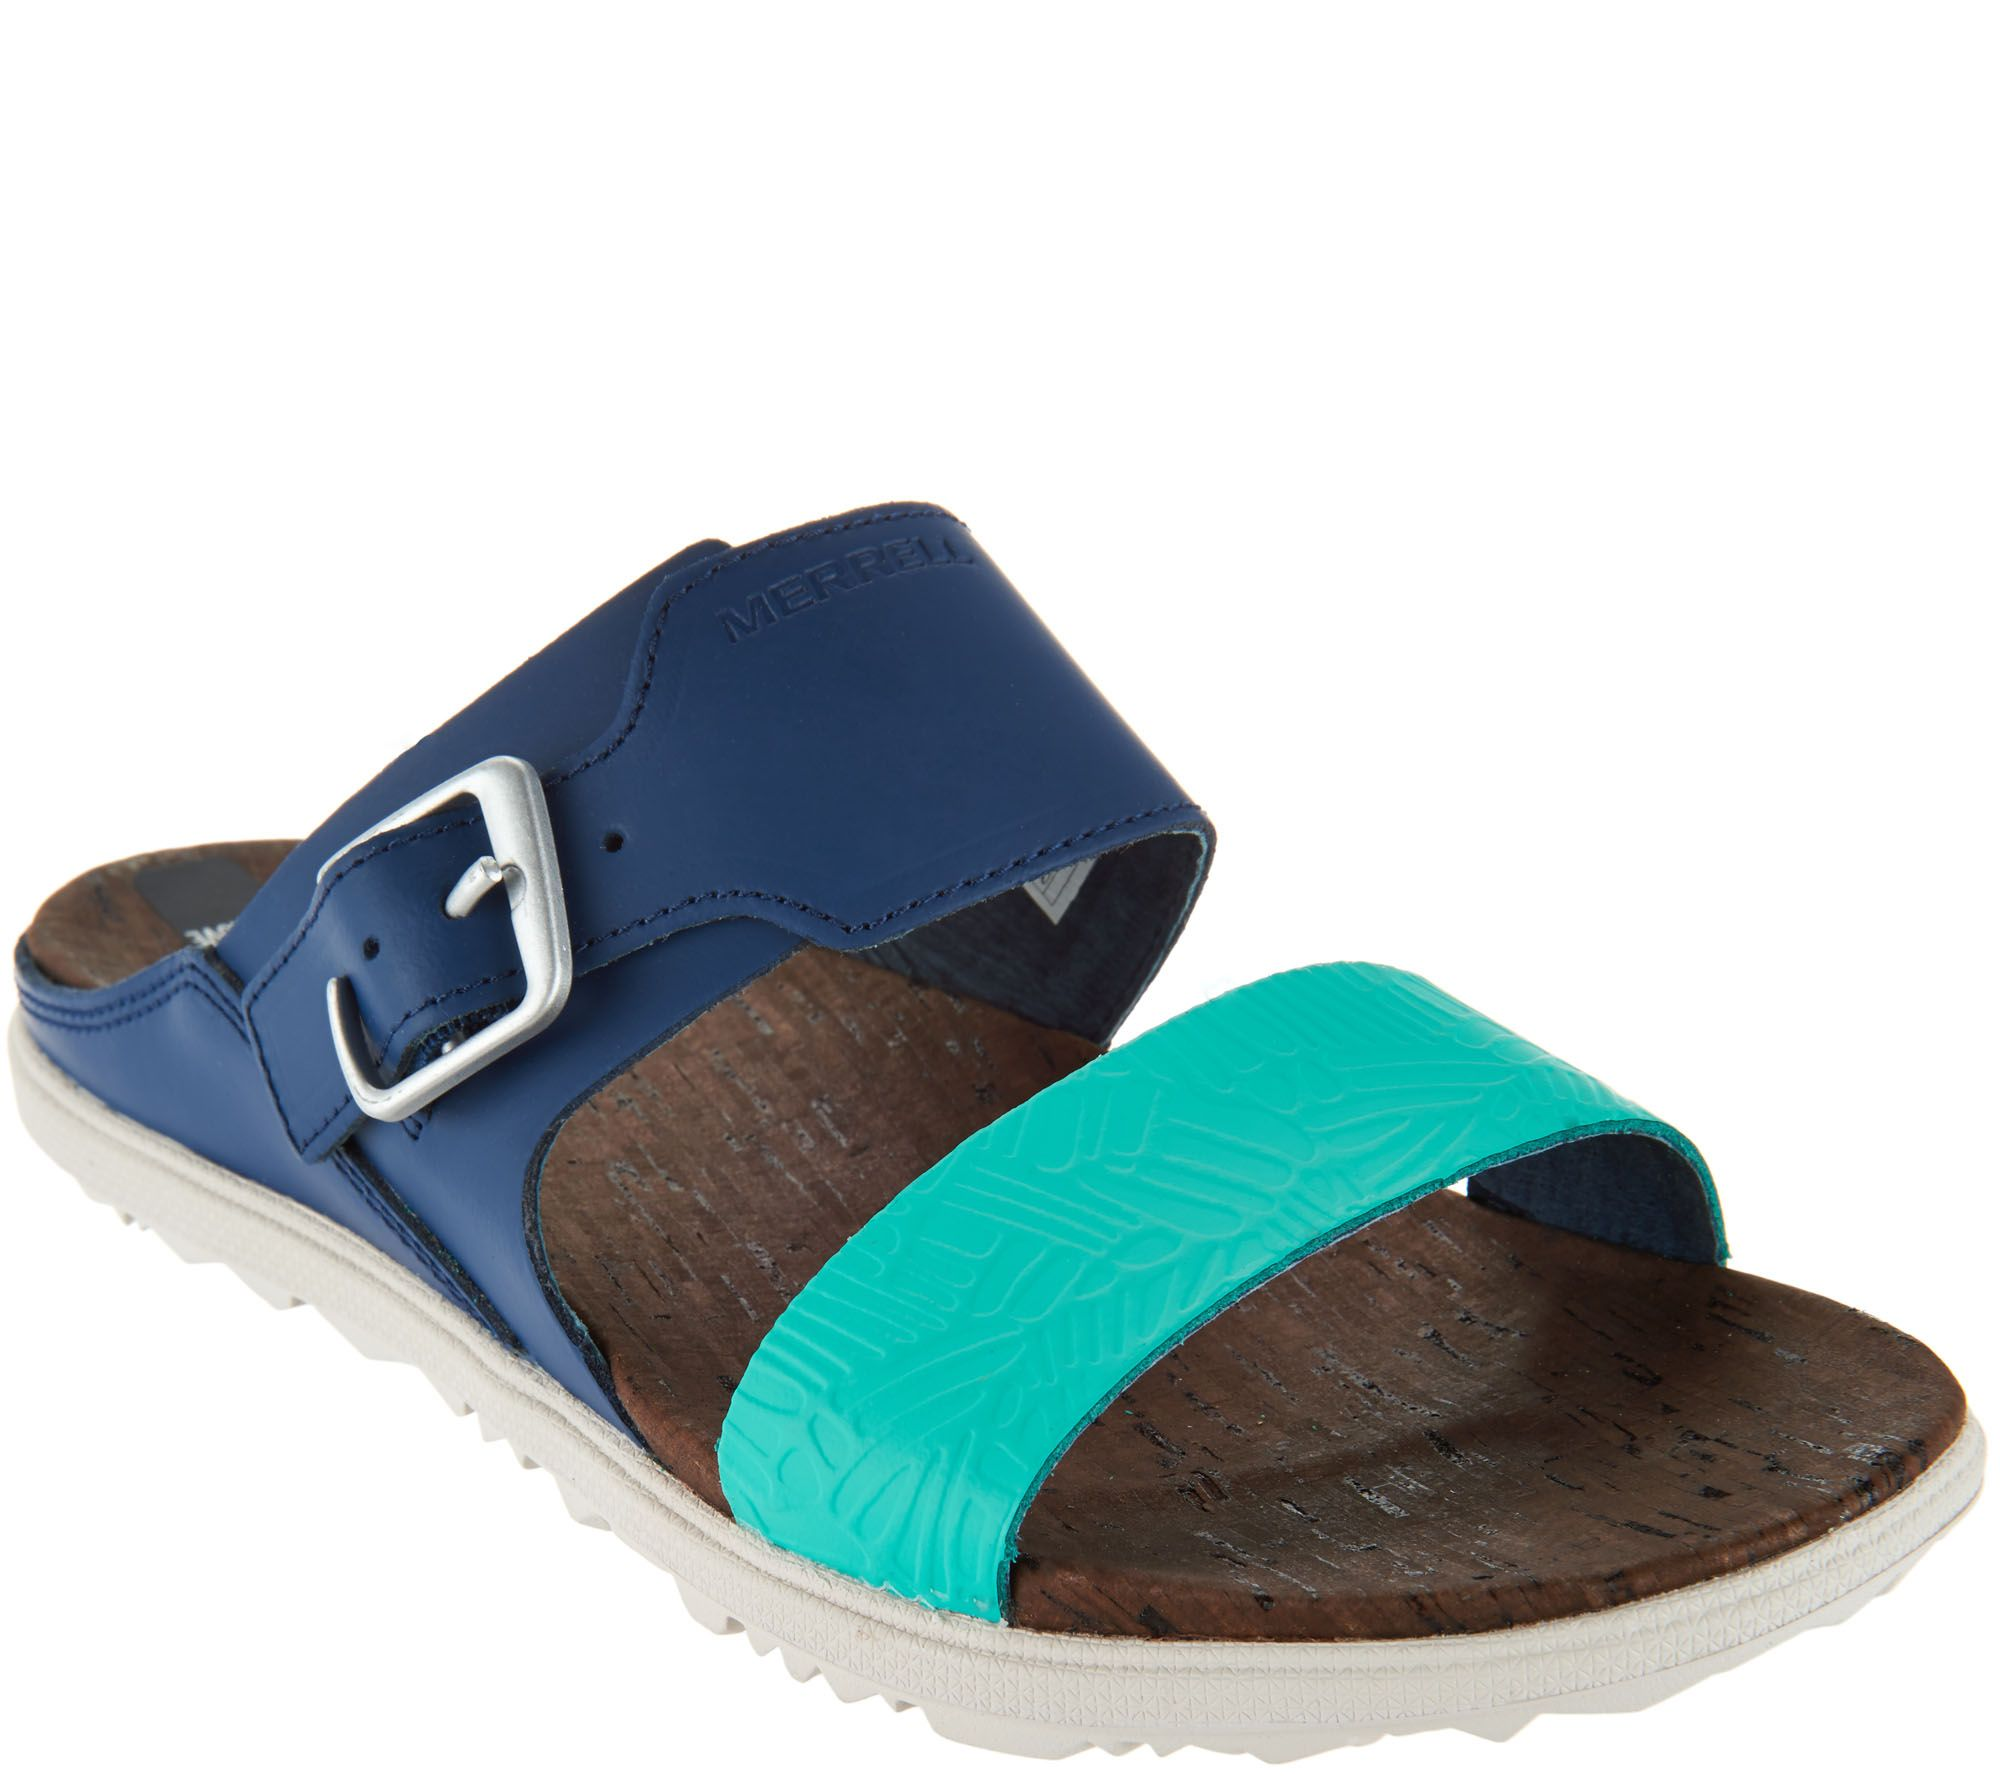 4075c27e7b6c Merrell Leather Slide Sandals w  Buckle - Around Town - Page 1 — QVC.com